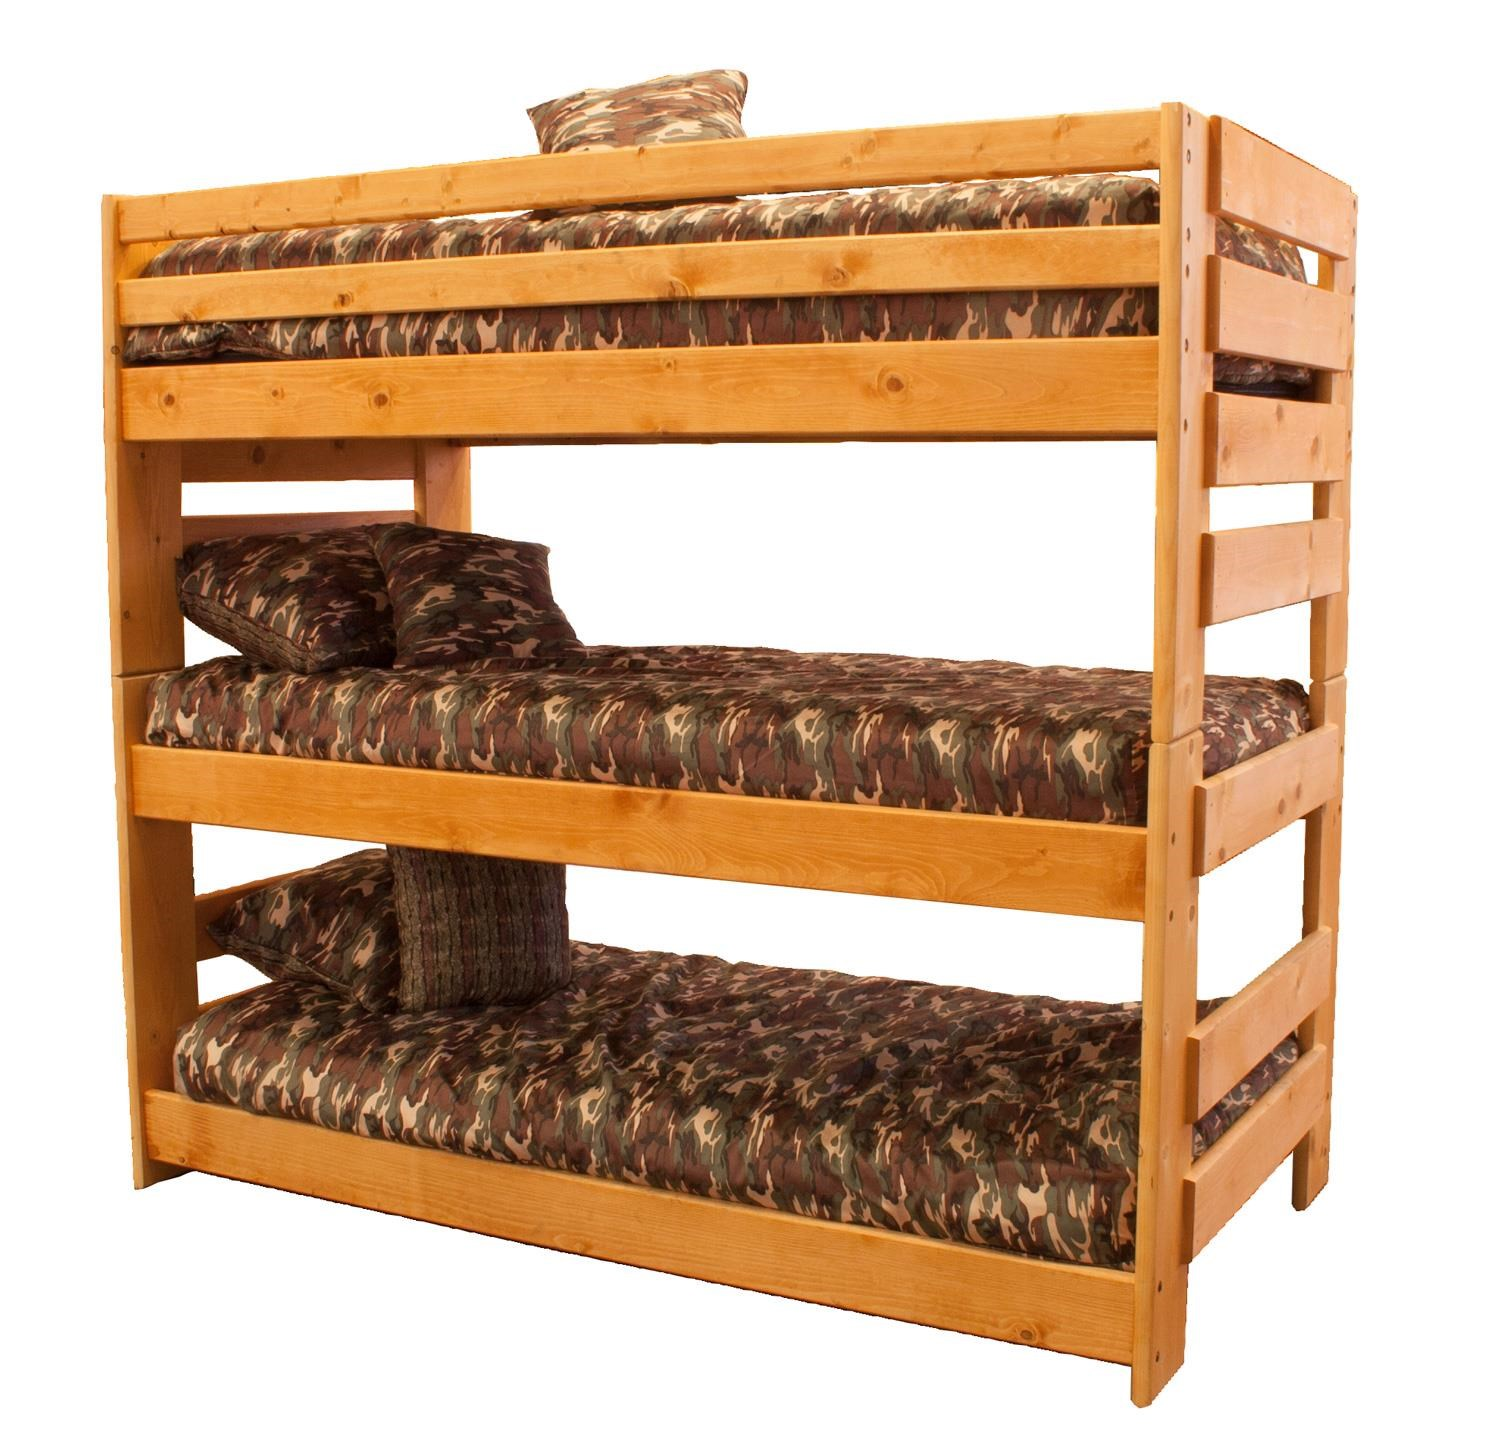 Trendwood Bunkhouse Triple Bunk Bed